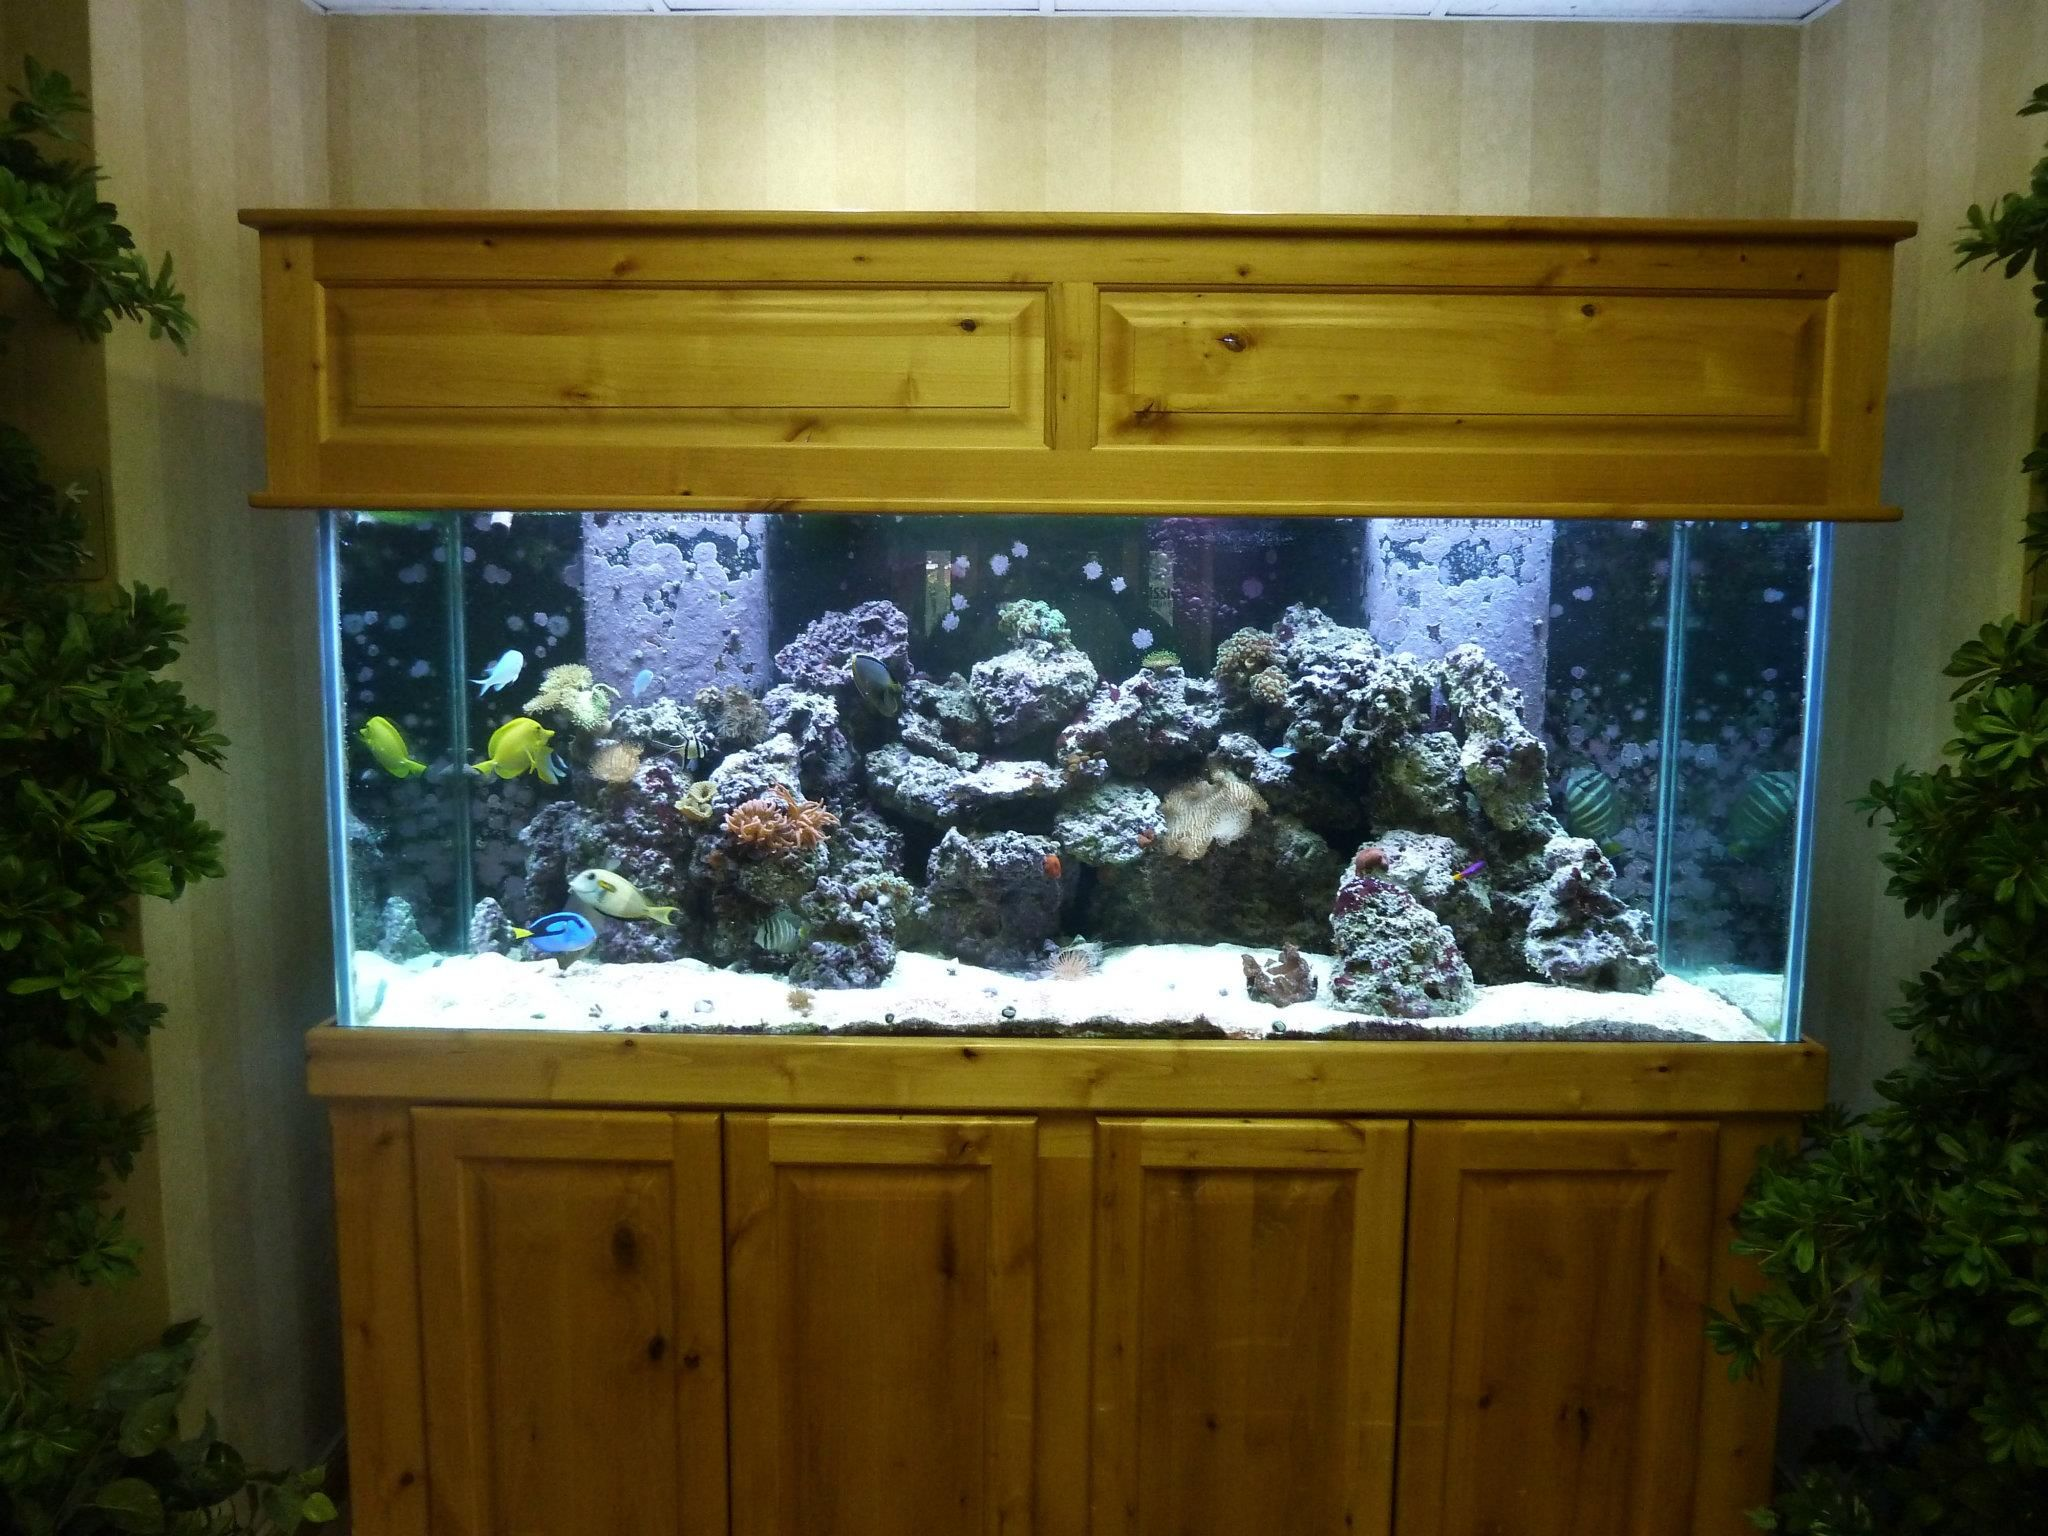 Aquarium Furniture Ideas, Diy, Design, Inspiration, Old Tv, Ipad, Modern,